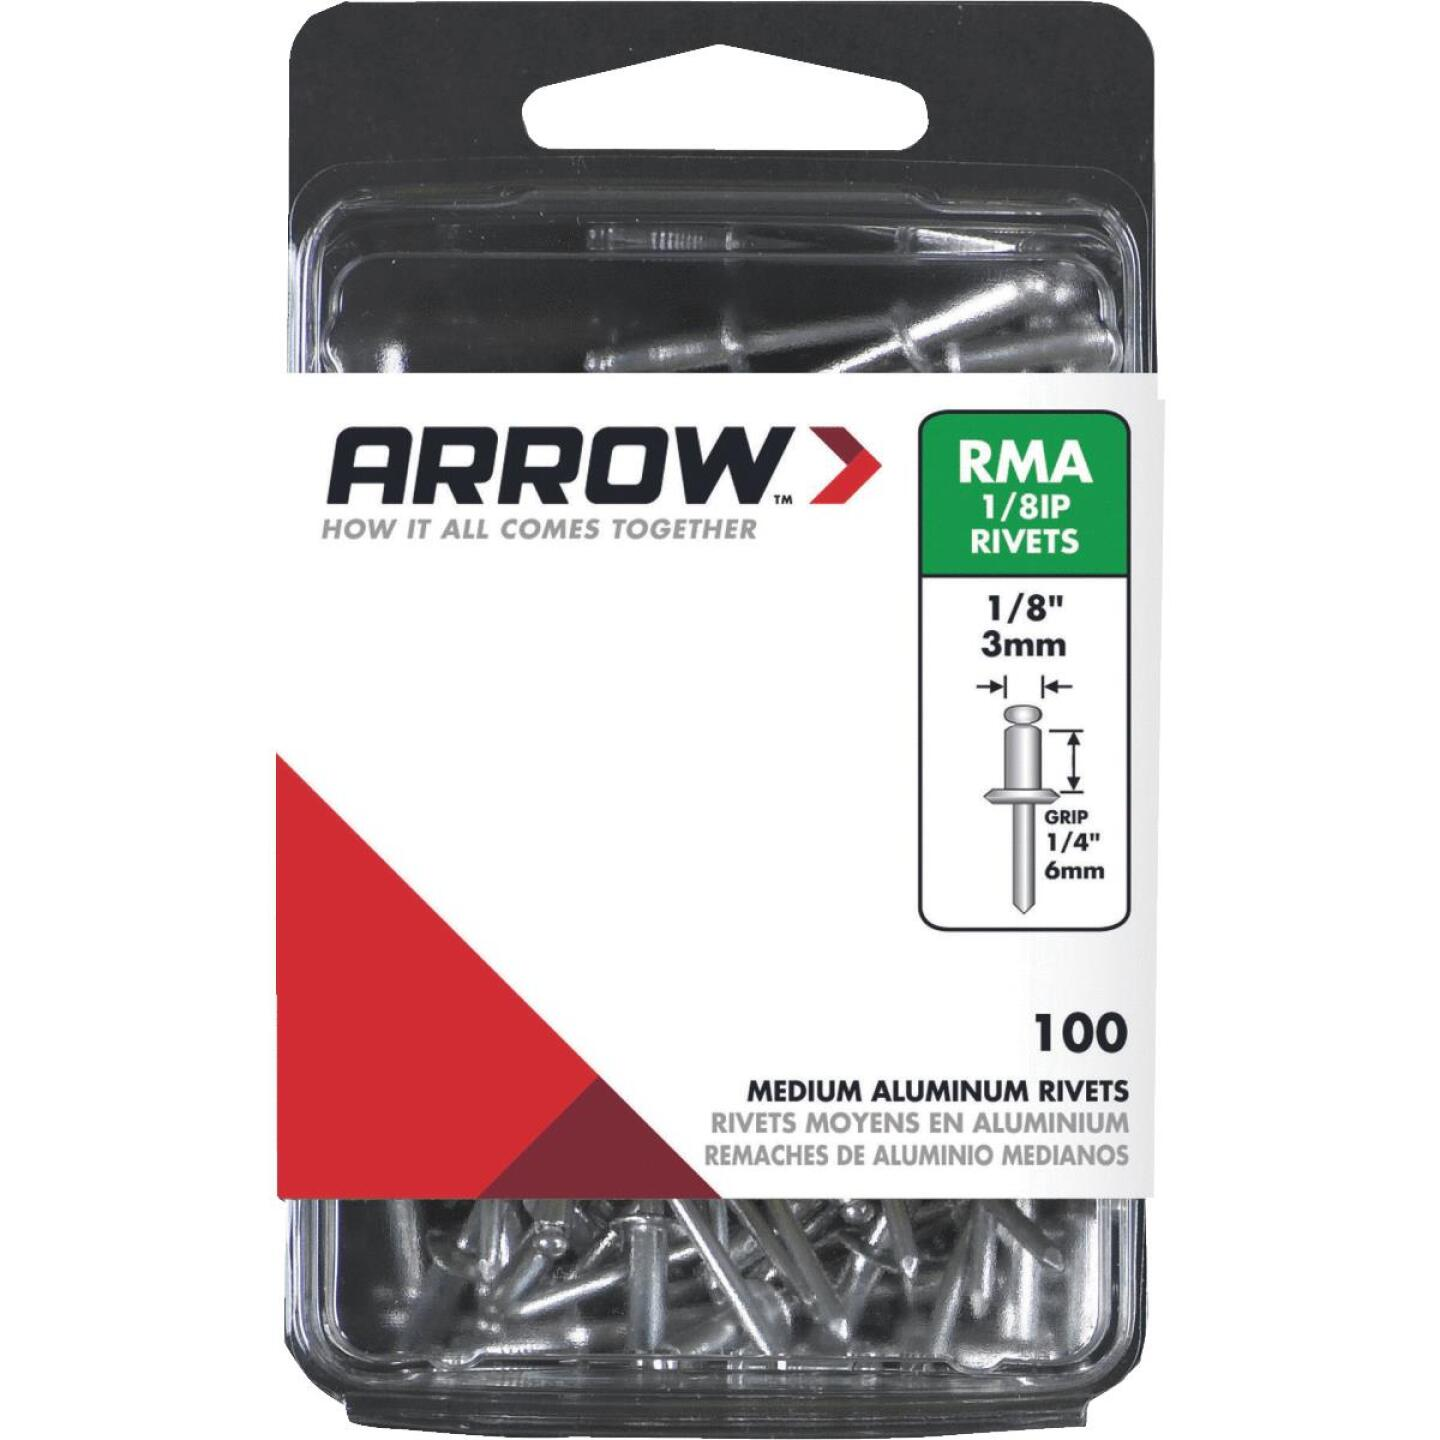 Arrow 1/8 In. x 1/4 In. Aluminum IP Rivet (100 Count) Image 1